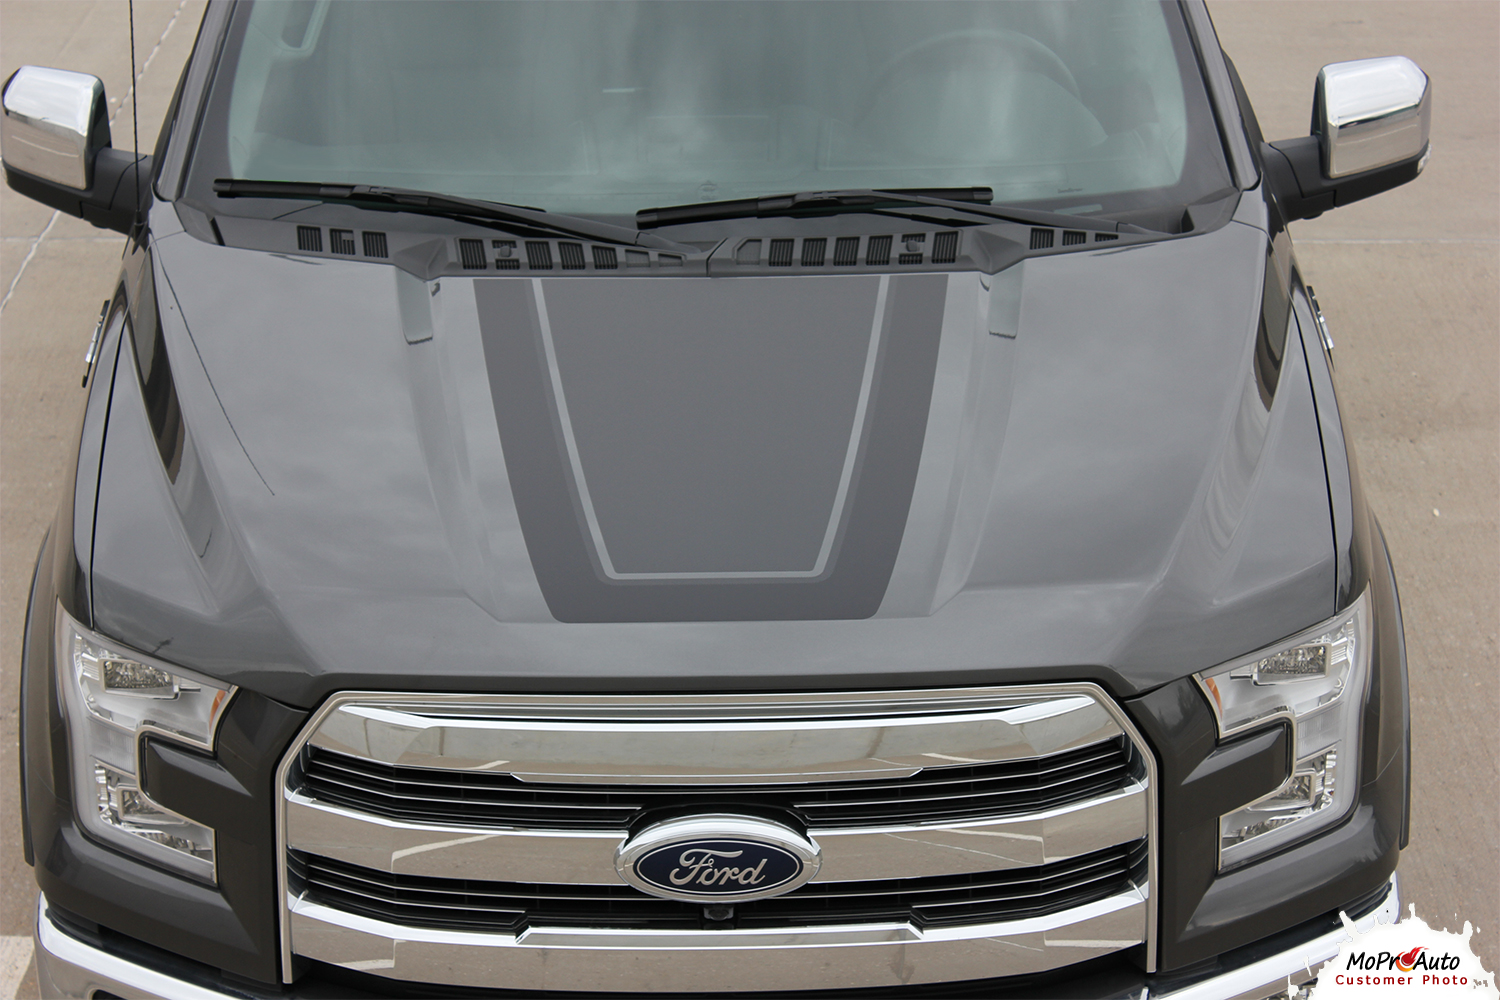 2015 2016 2017 2018  Ford F-Series F-150 Vinyl Graphics Stripes and Decals Kit Tremor FX Appearance Package Hood by MoProAuto Pro Design Series